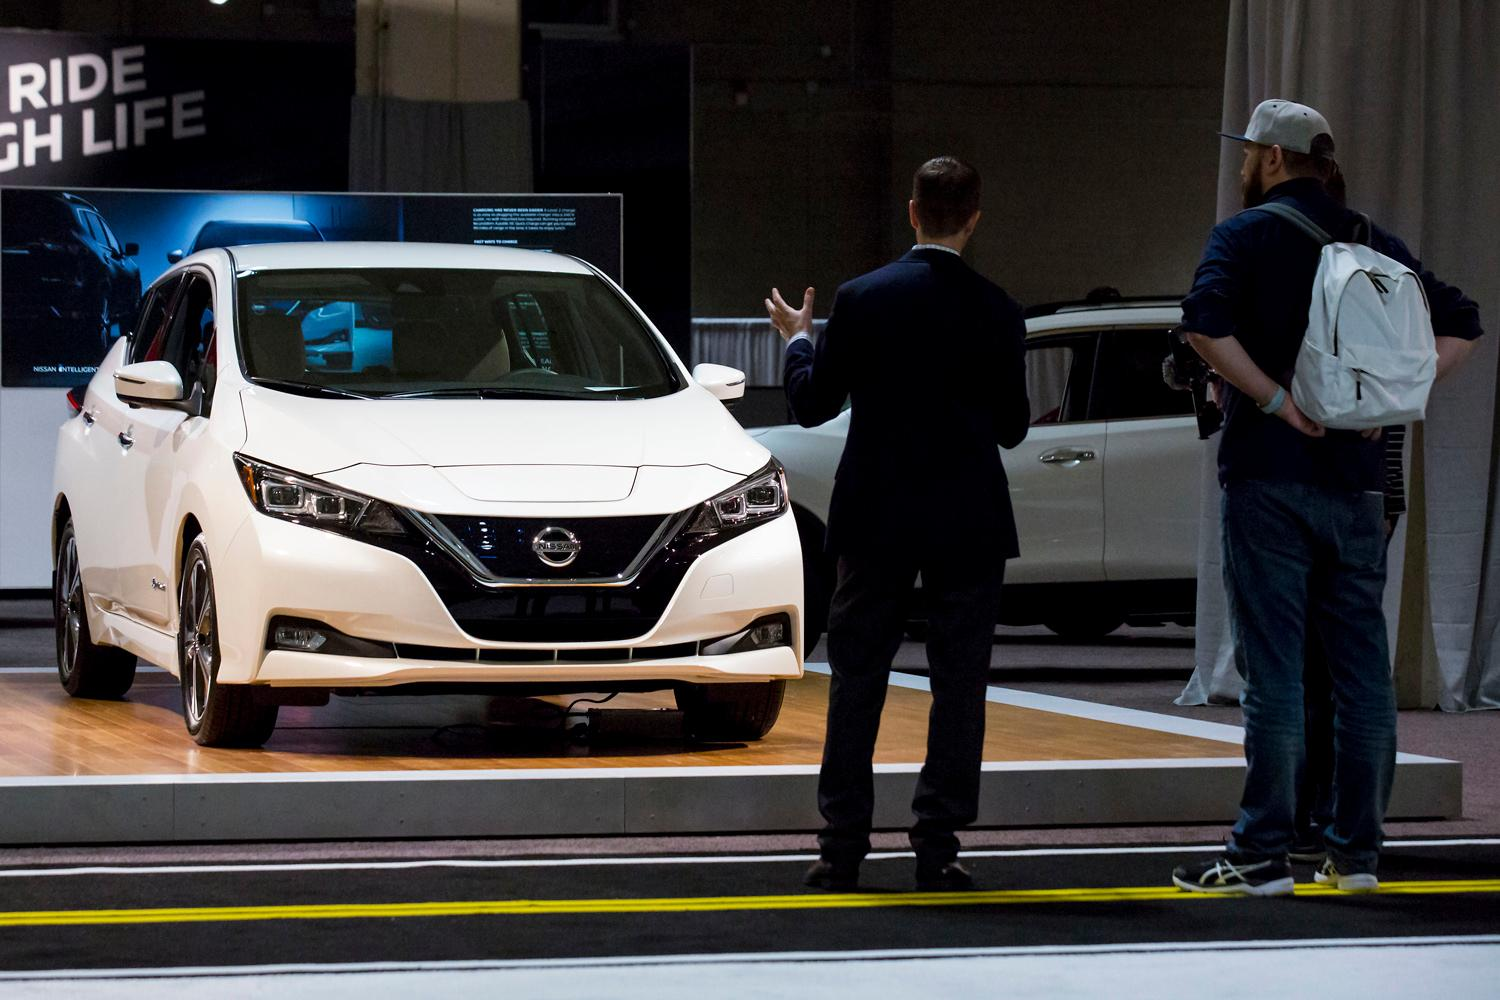 The 2018 Nissan Leaf, with a range of 150 miles, at the Seattle International Auto Show at the CenturyLink Event Center. (Sy Bean / Seattle Refined)